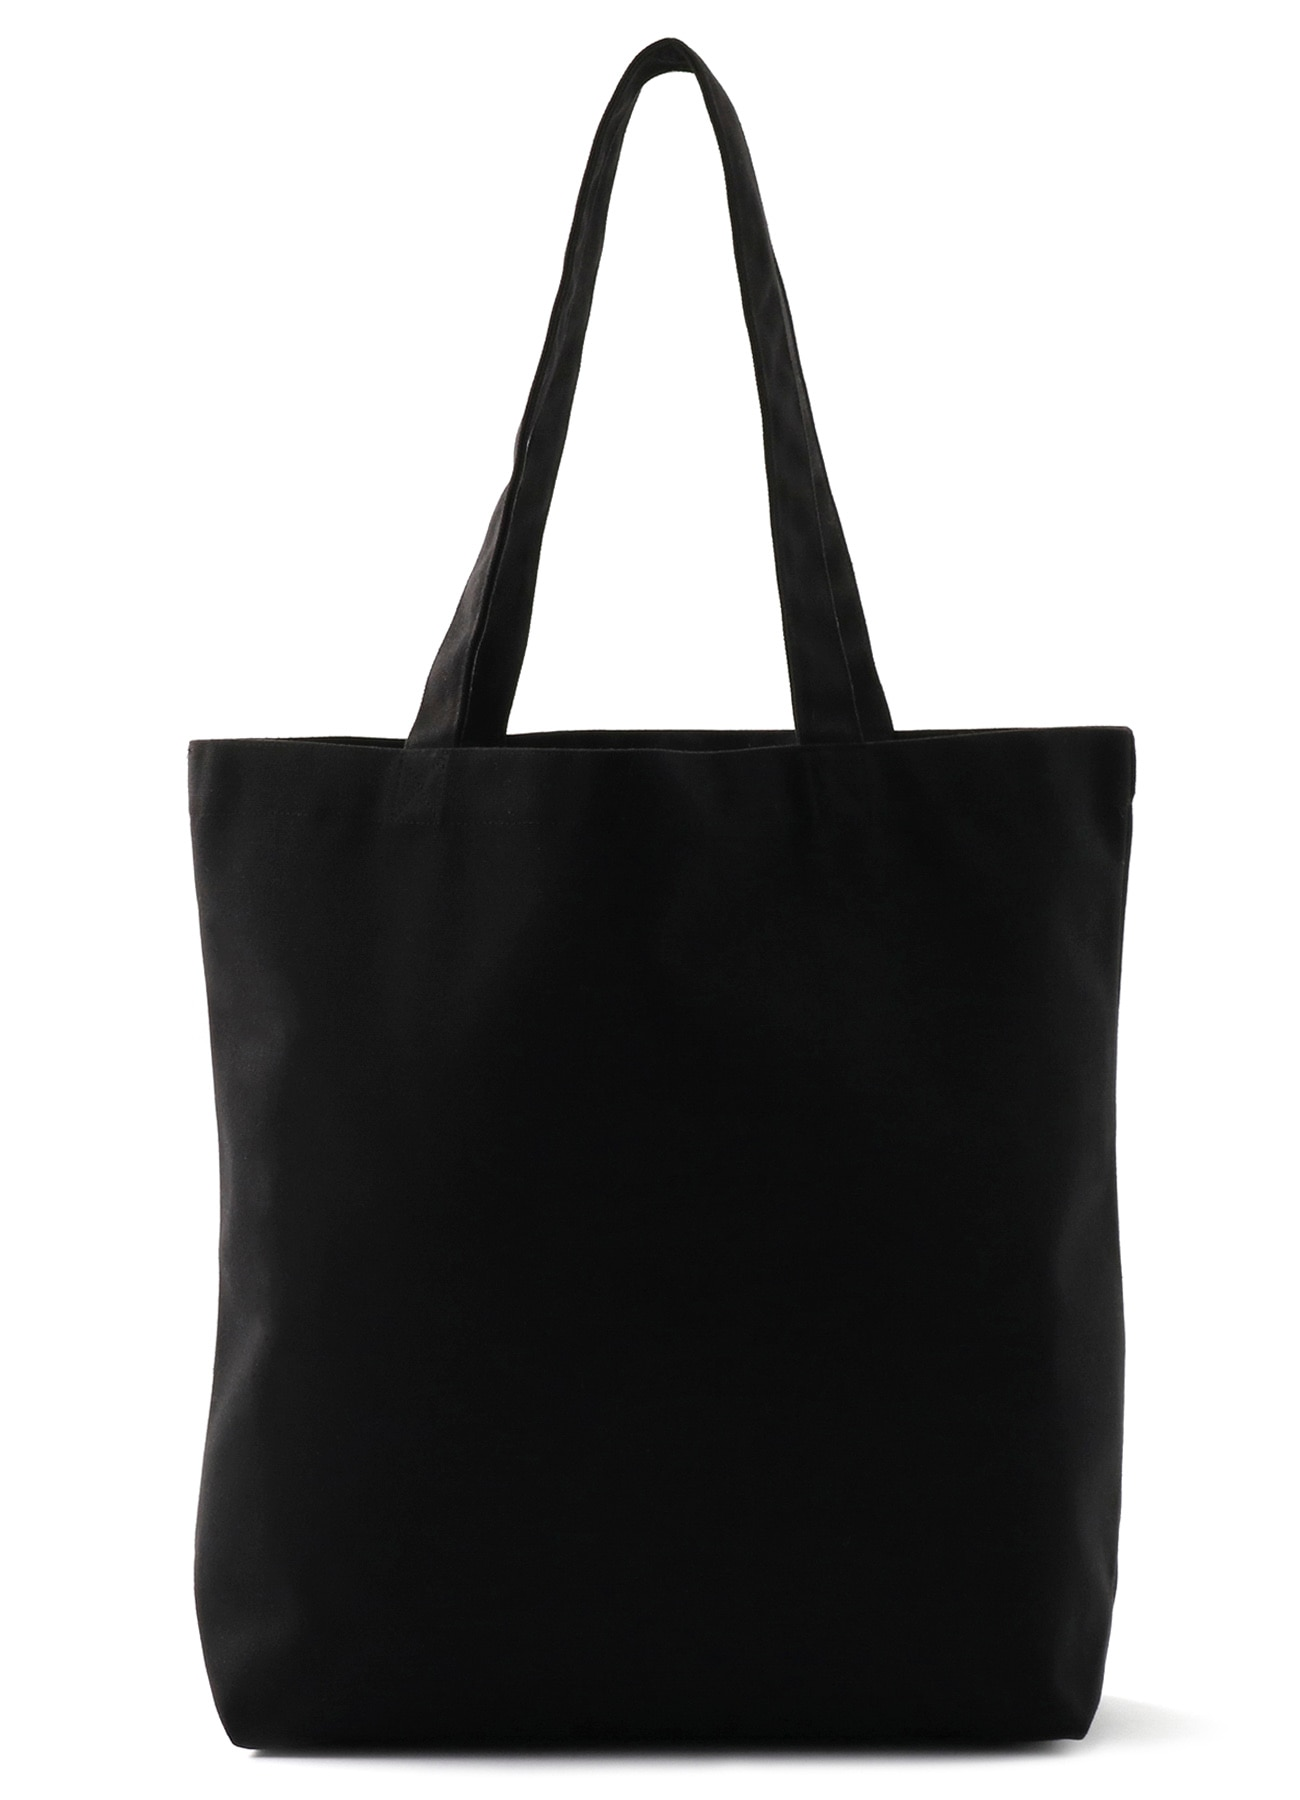 Tote Cotton Canvas Message Tote Bag